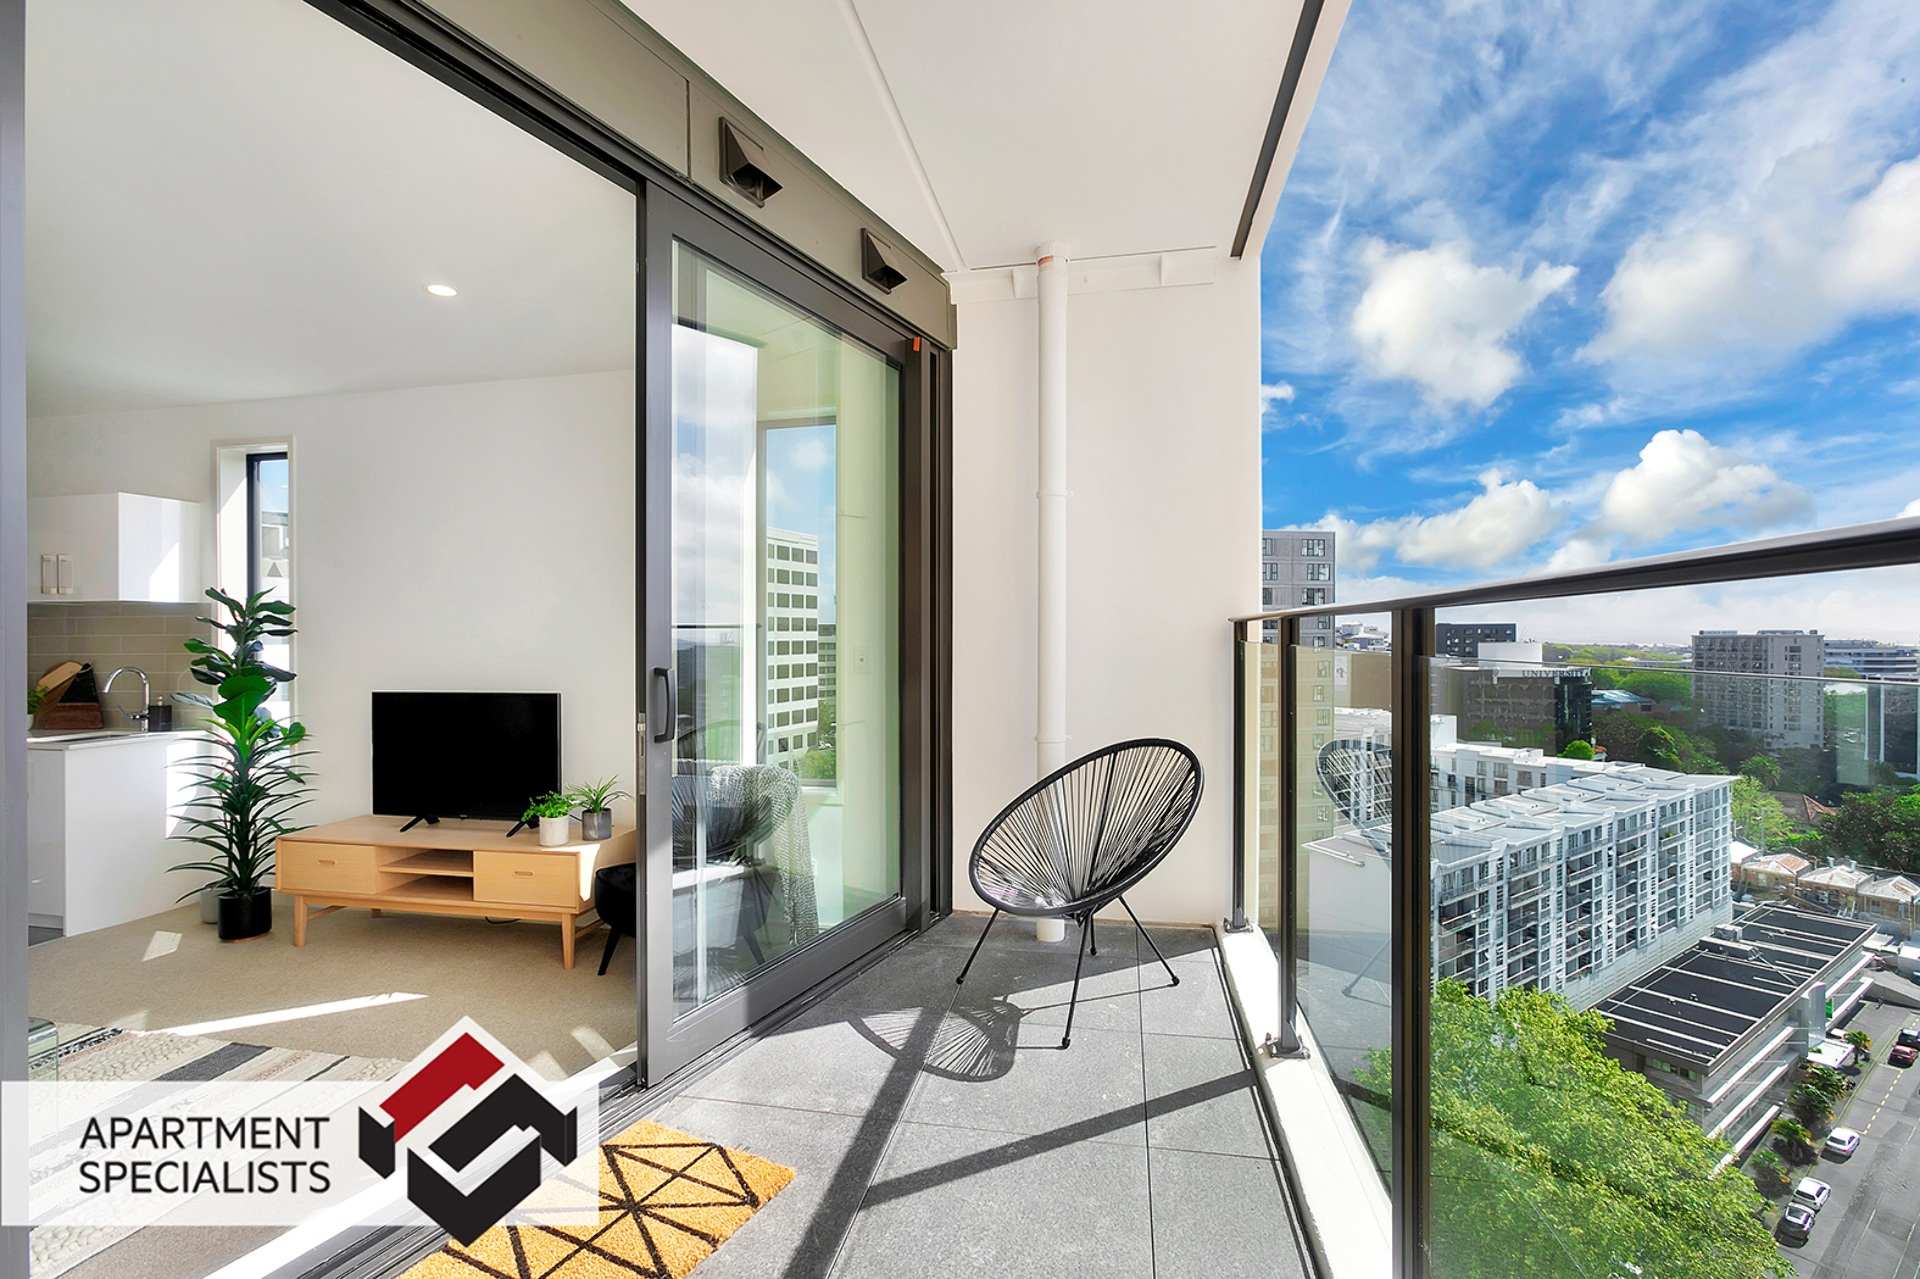 Hero | 79 Airedale Street, City Centre | Apartment Specialists